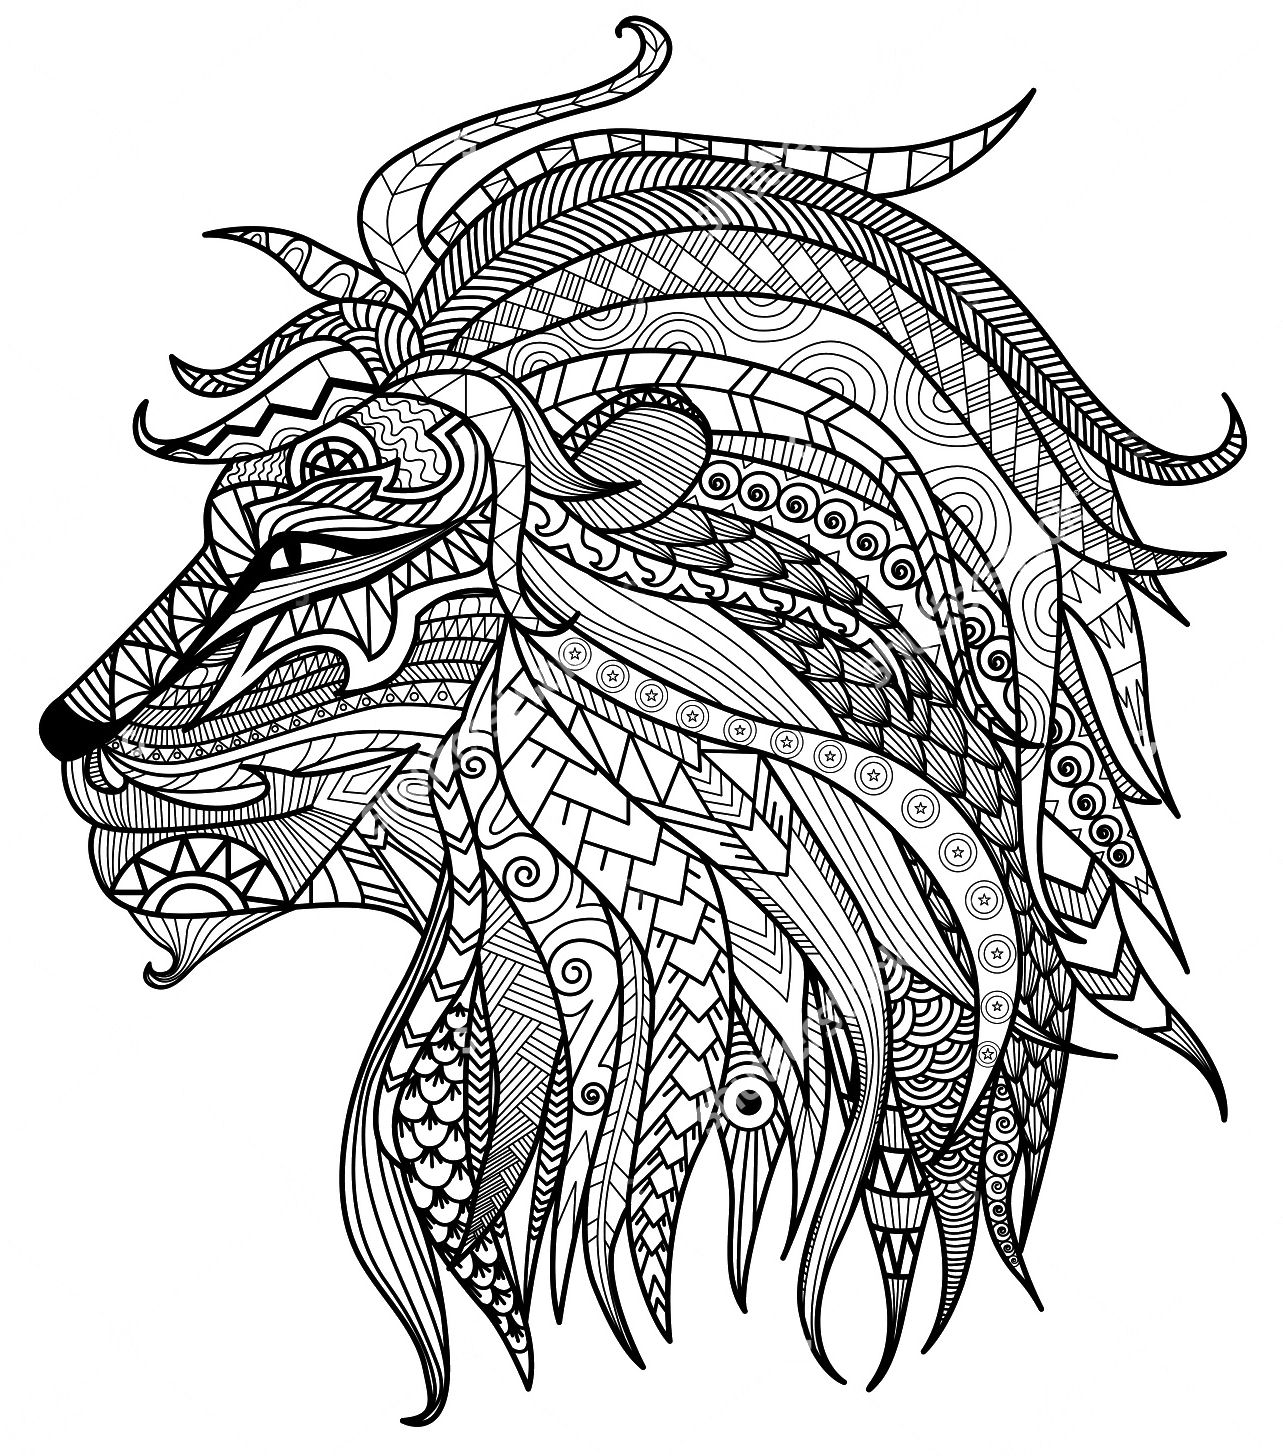 coloring pages of lion lion for kids lion kids coloring pages lion of pages coloring